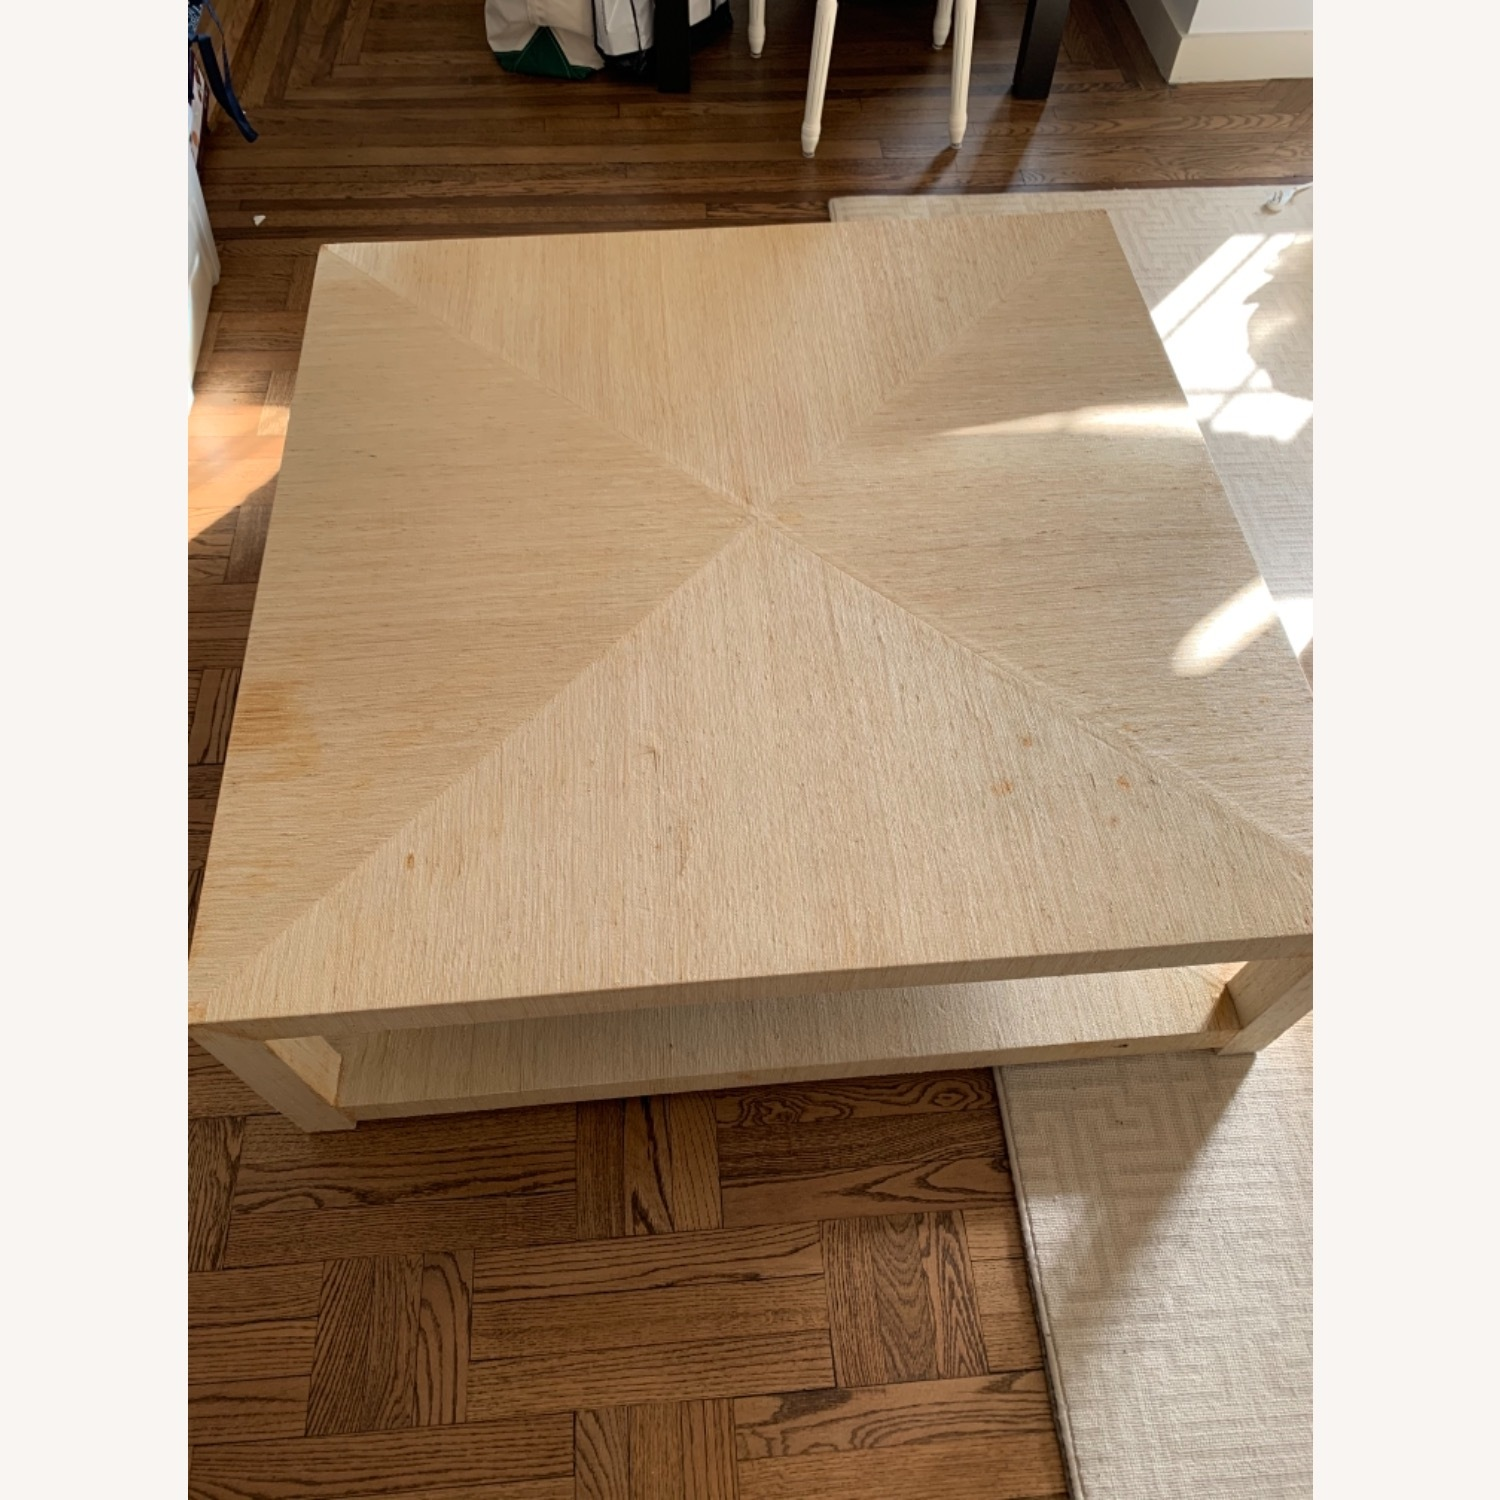 Serena & Lily Driftway Coffee Table - image-1